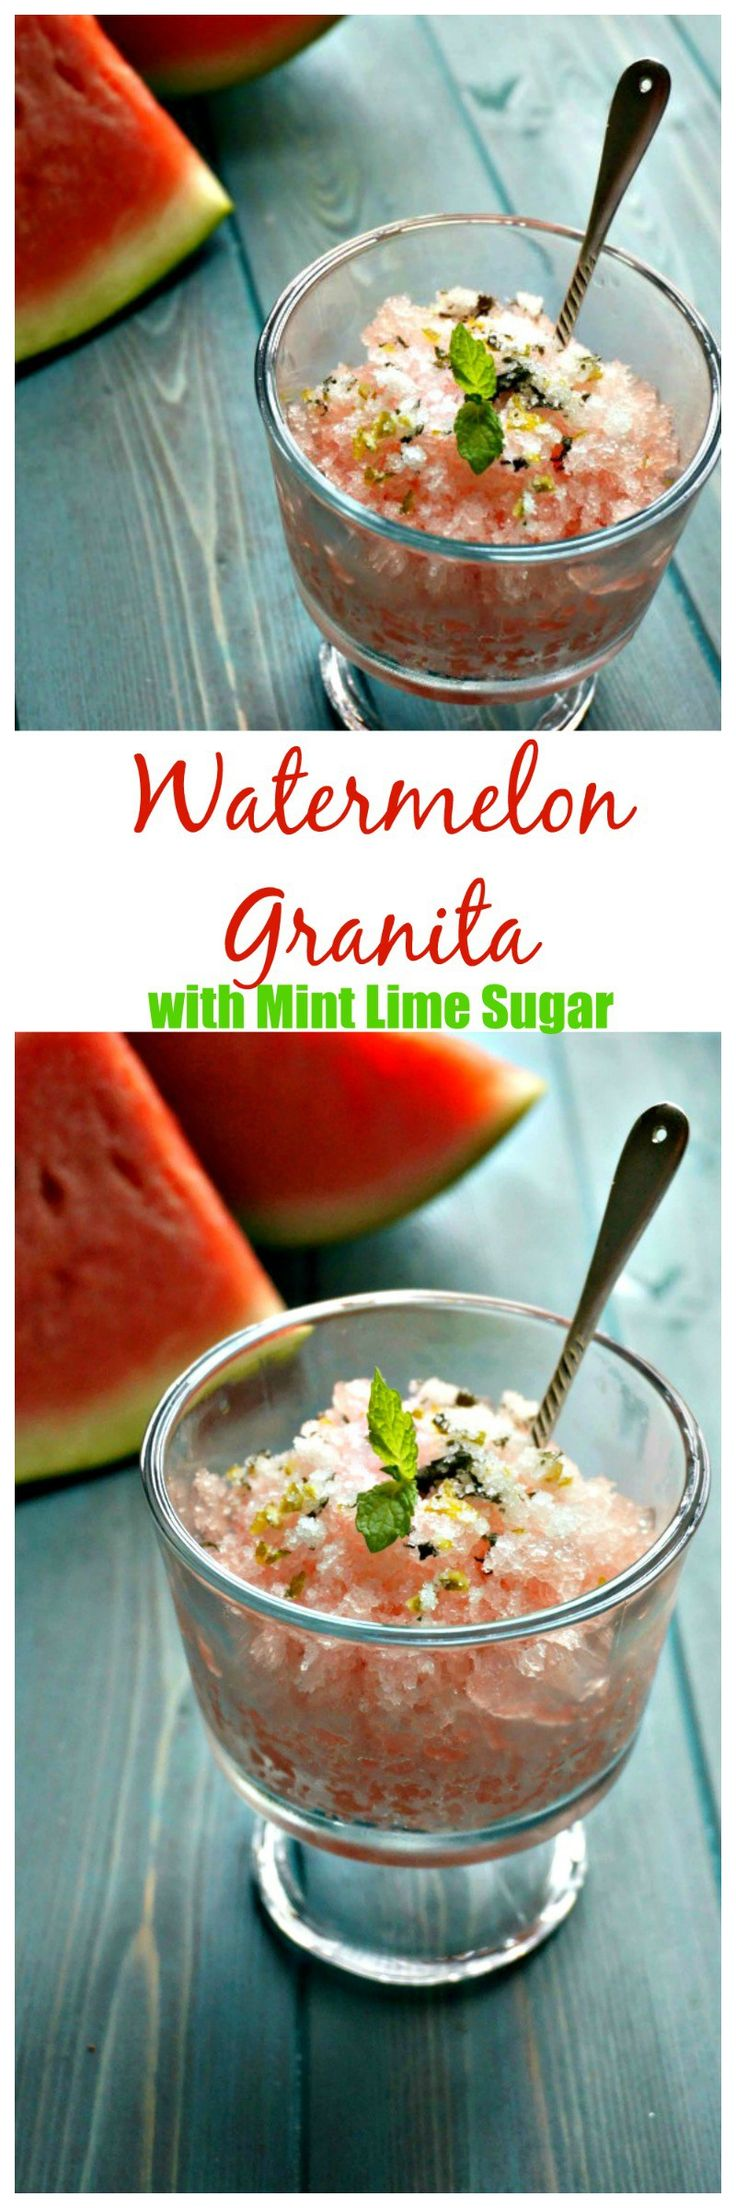 Watermelon Granita with Mint Lime Sugar: Fresh watermelon is turned into a refreshing granita that is finished off with a mint lime sugar. This is the perfect treat to cool down on a hot summer day. #FreshFromFlorida #IC #ad